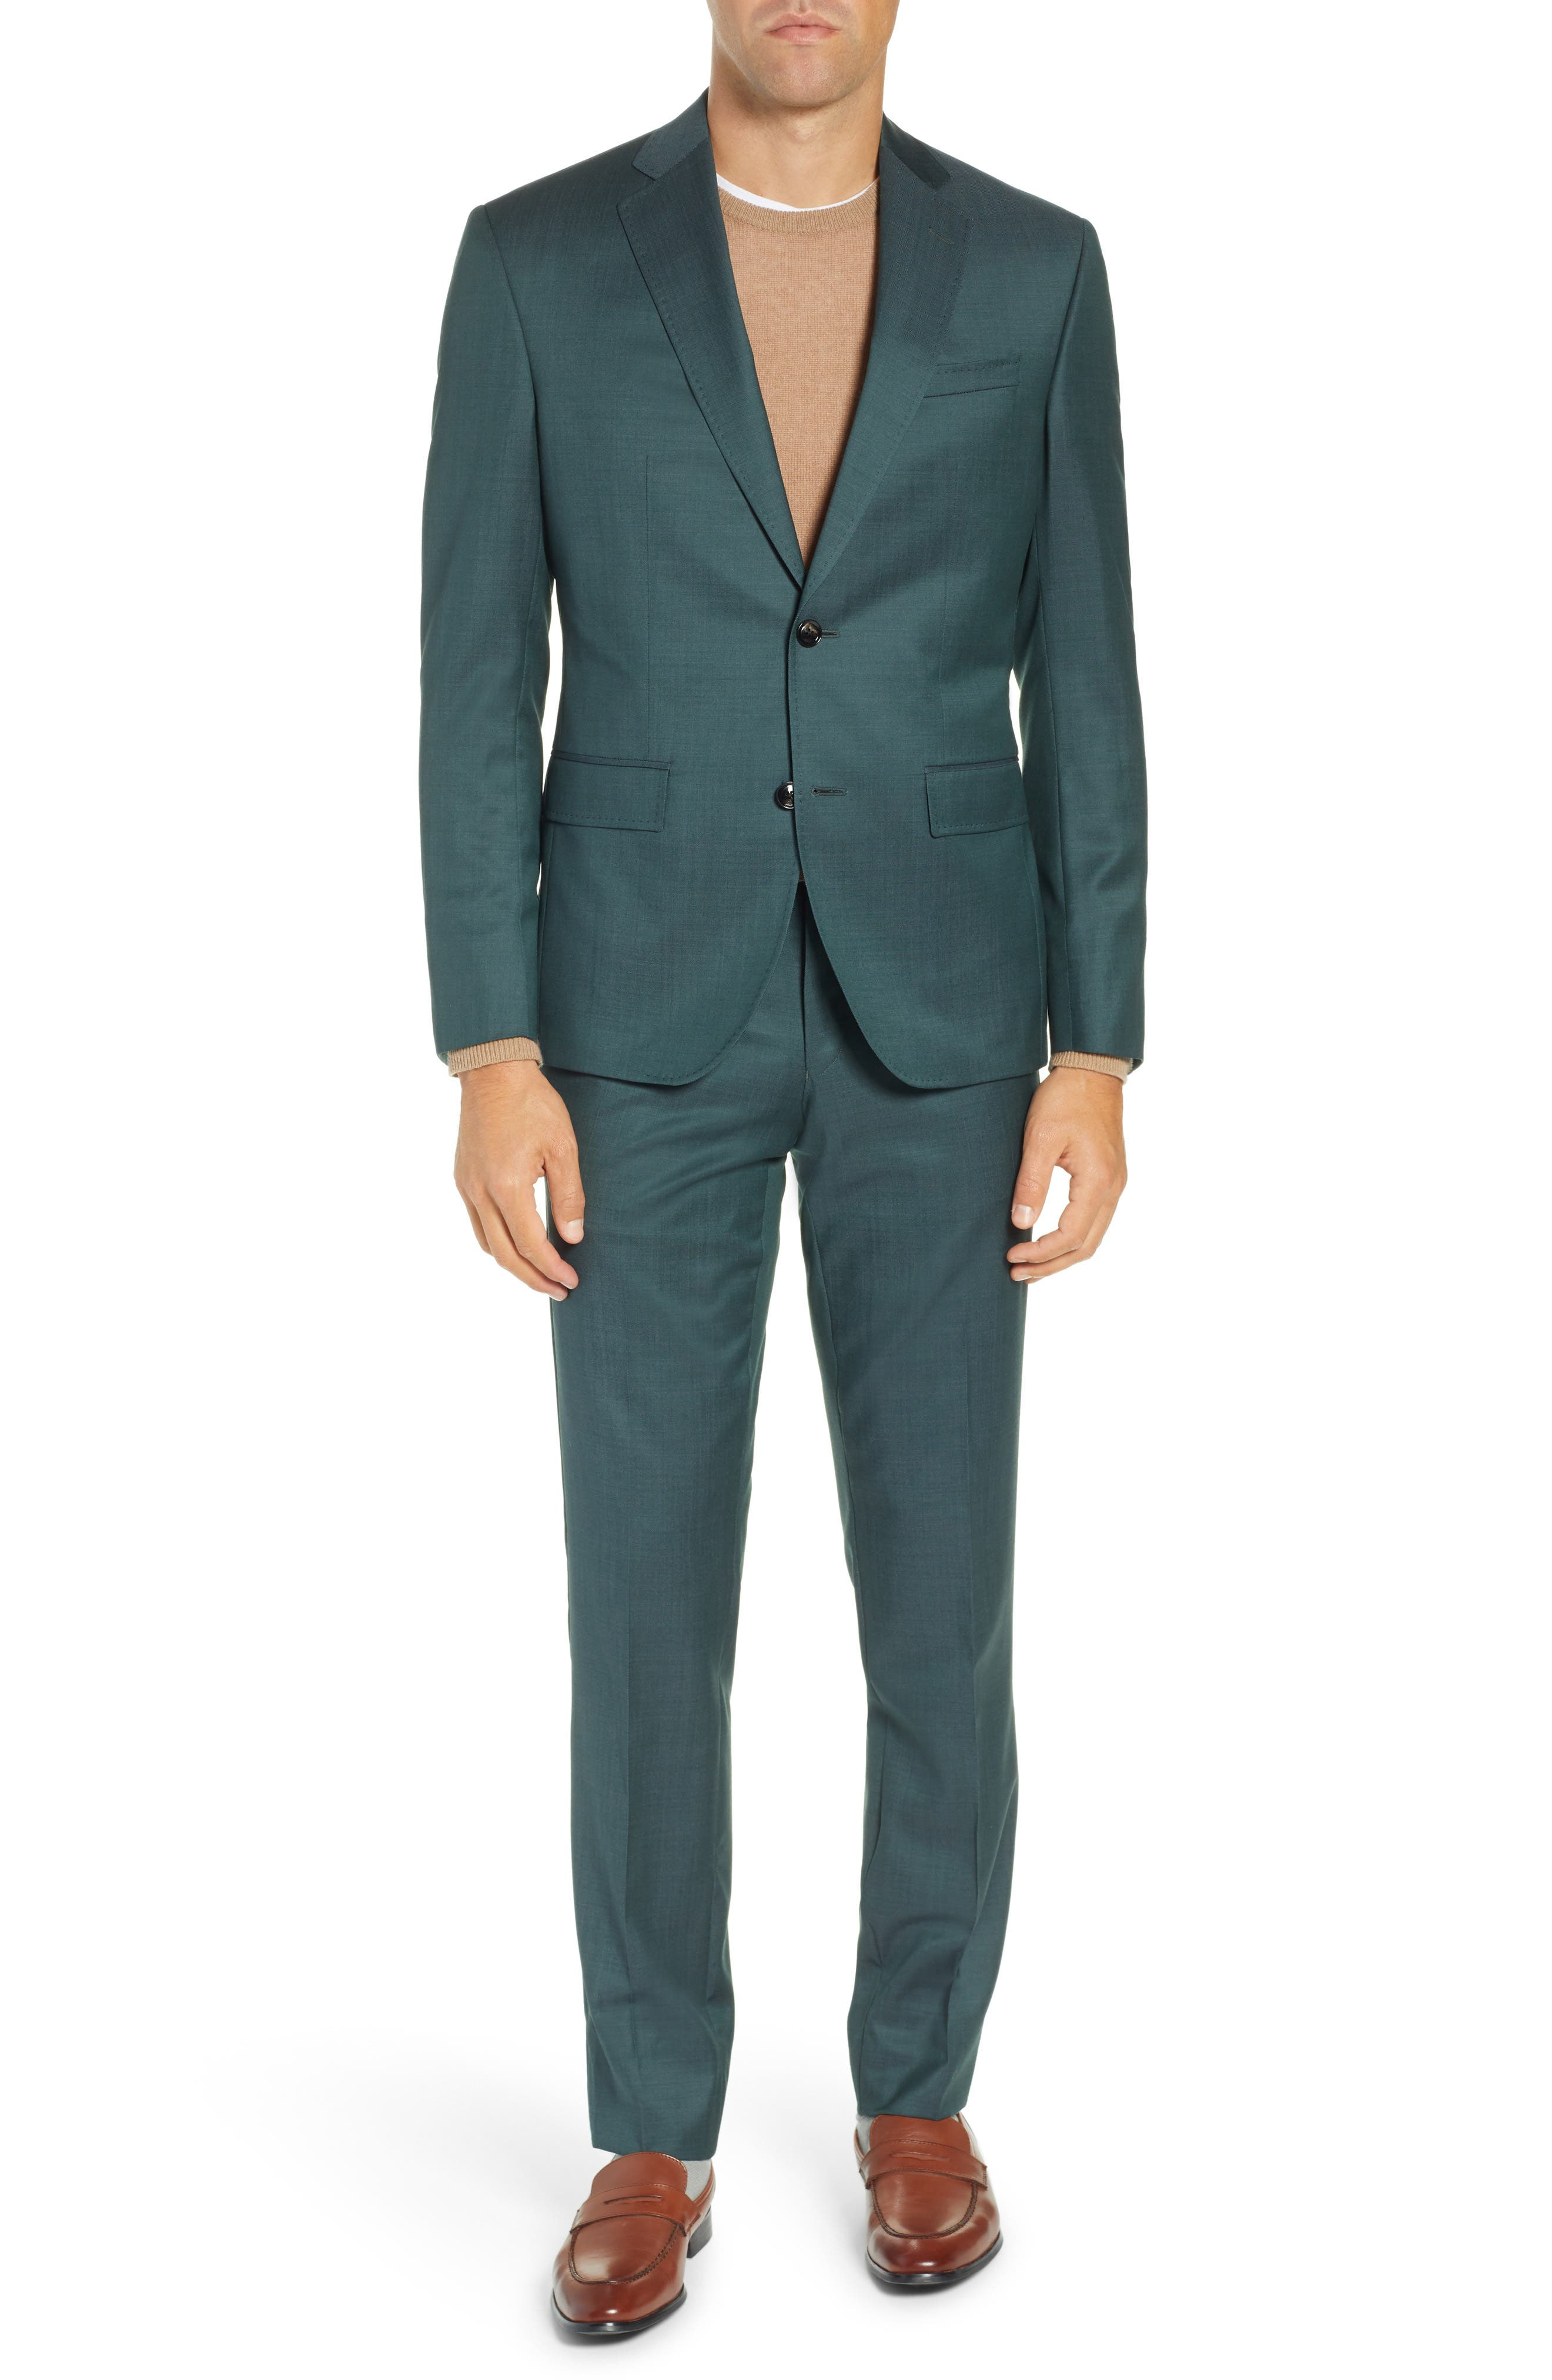 TED BAKER LONDON, Roger Slim Fit Solid Wool Suit, Main thumbnail 1, color, GREEN